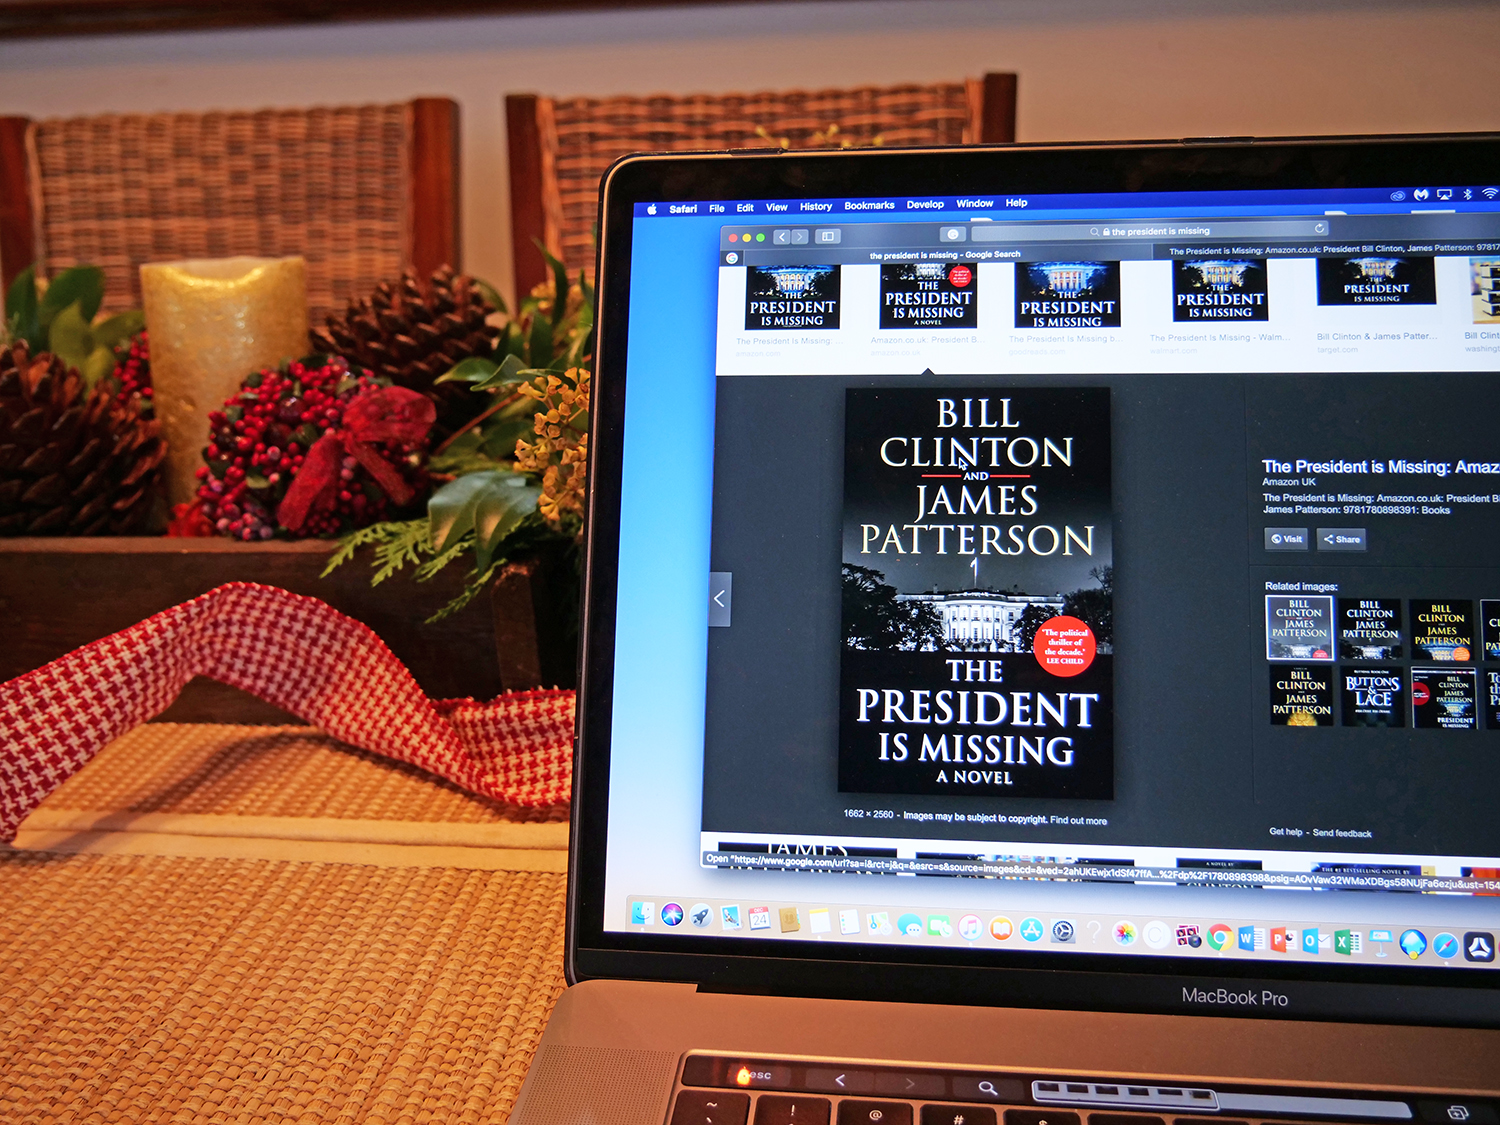 THE PRESIDENT IS MISSING , by Bill Clinton and James Patterson. I remember one Christmas break when I read The Prince of Tides by Pat Conroy and it affected me so deeply that I was in some weird funk for weeks. So never again, and this time, something you'd read with a popcorn in hand. I think this is the first novel of James Patterson's that I've read- everything else I've probably watched as a movie. This is the kind of fiction that has brought this man over $750 million.